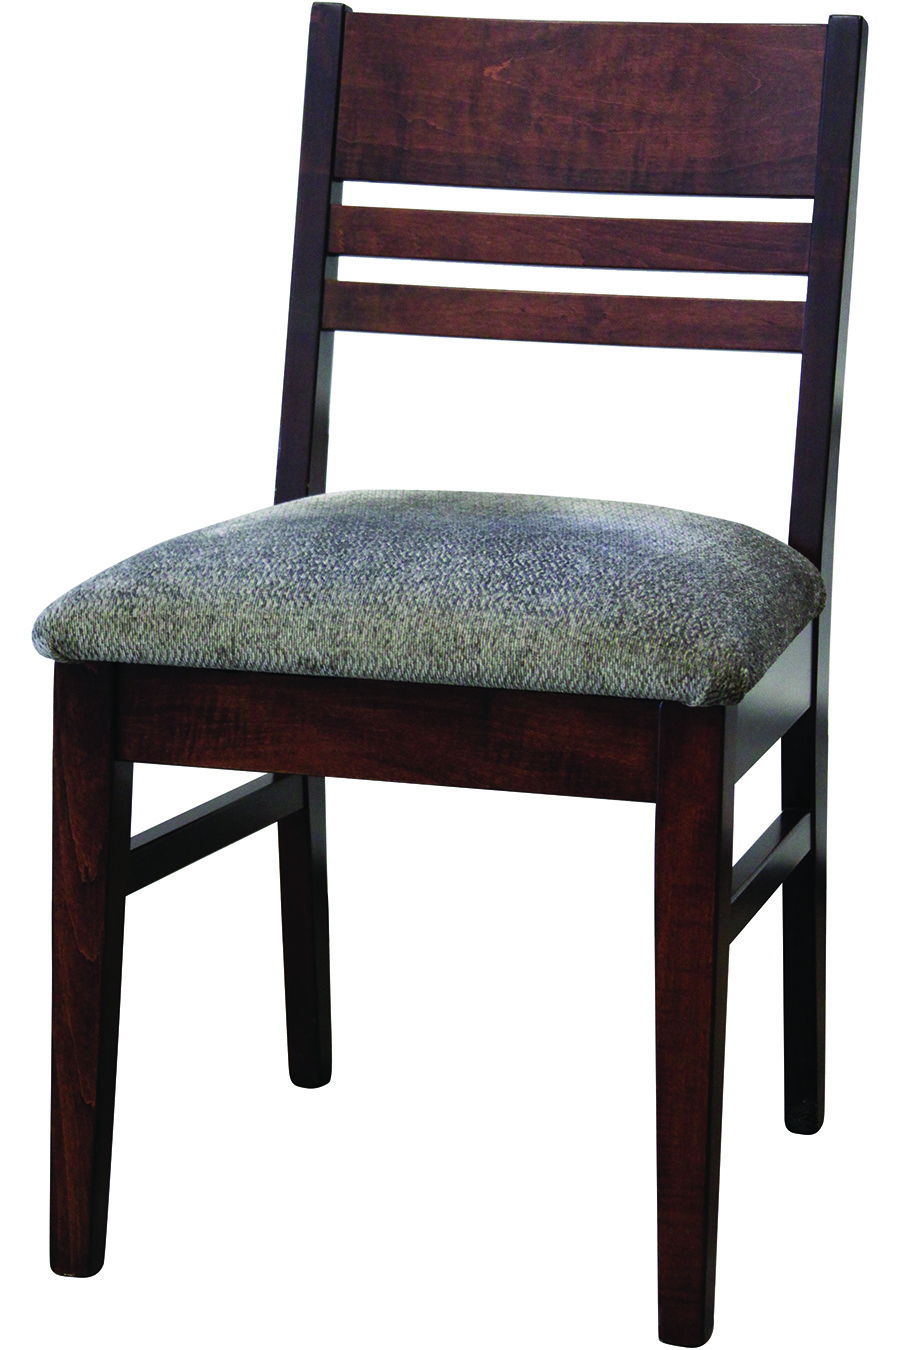 Justin Solid Wood, Handcrafted Kitchen Chair or DIning Chair from Harvest Home Interiors Amish Furniture